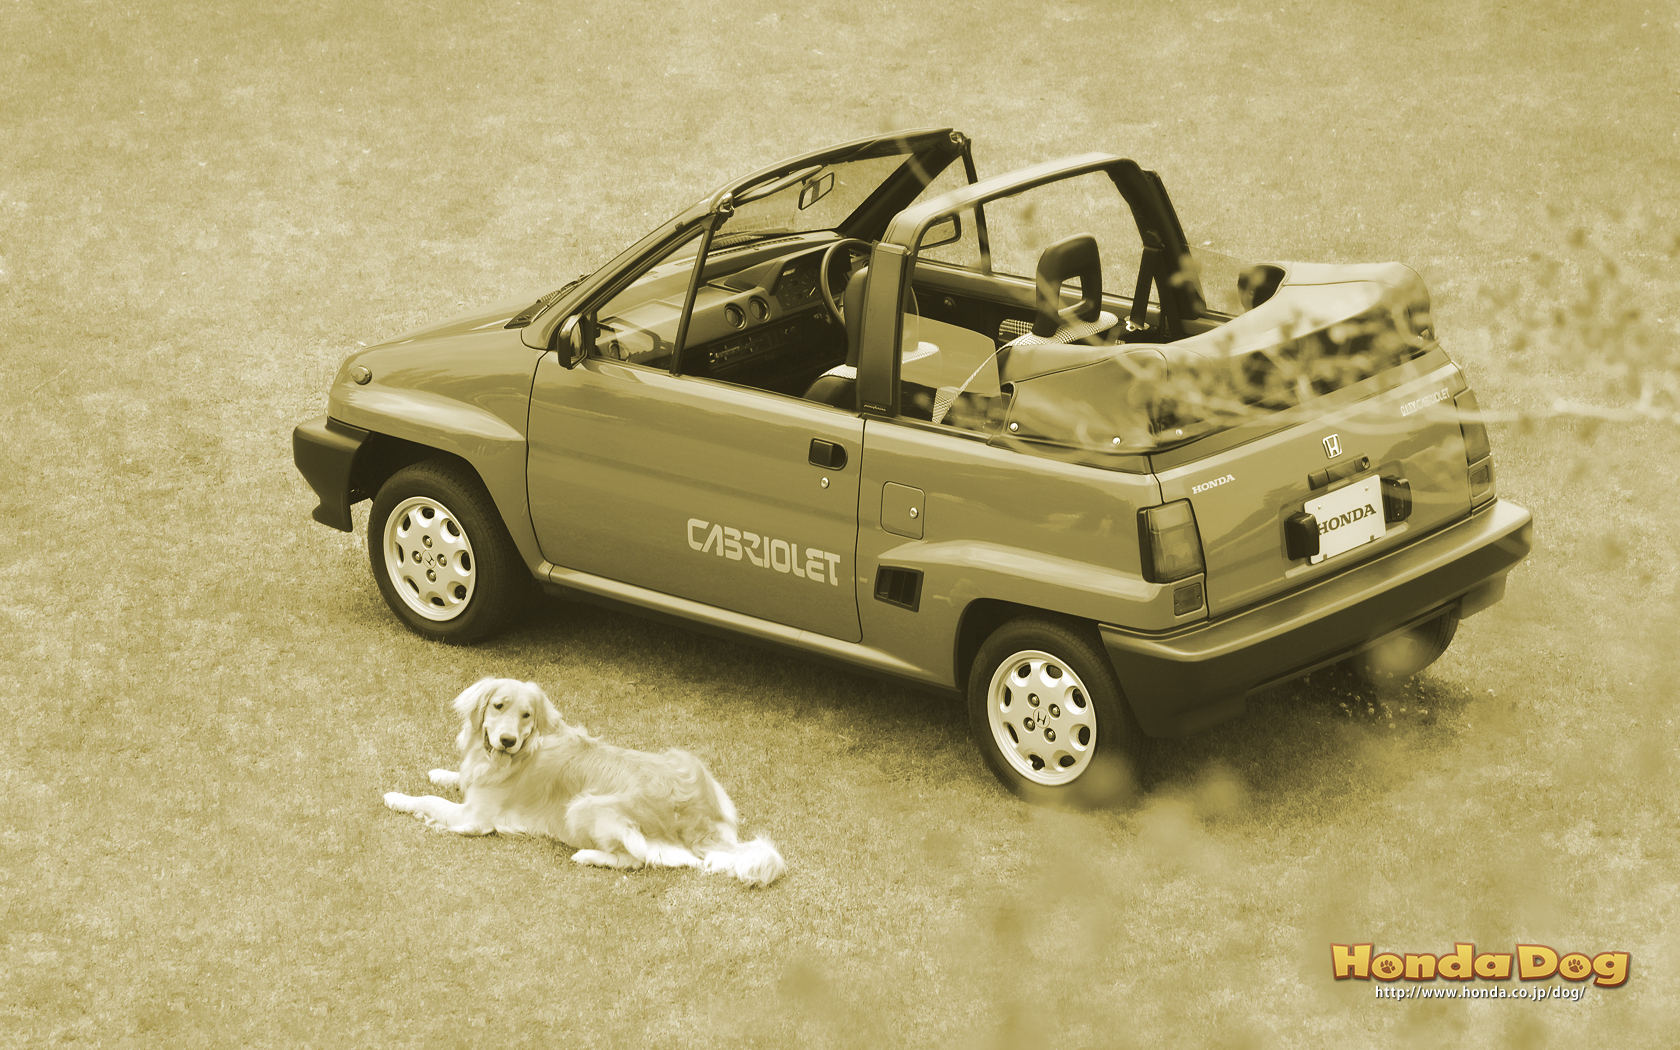 dog-vintage-city-cabriolet-wp4